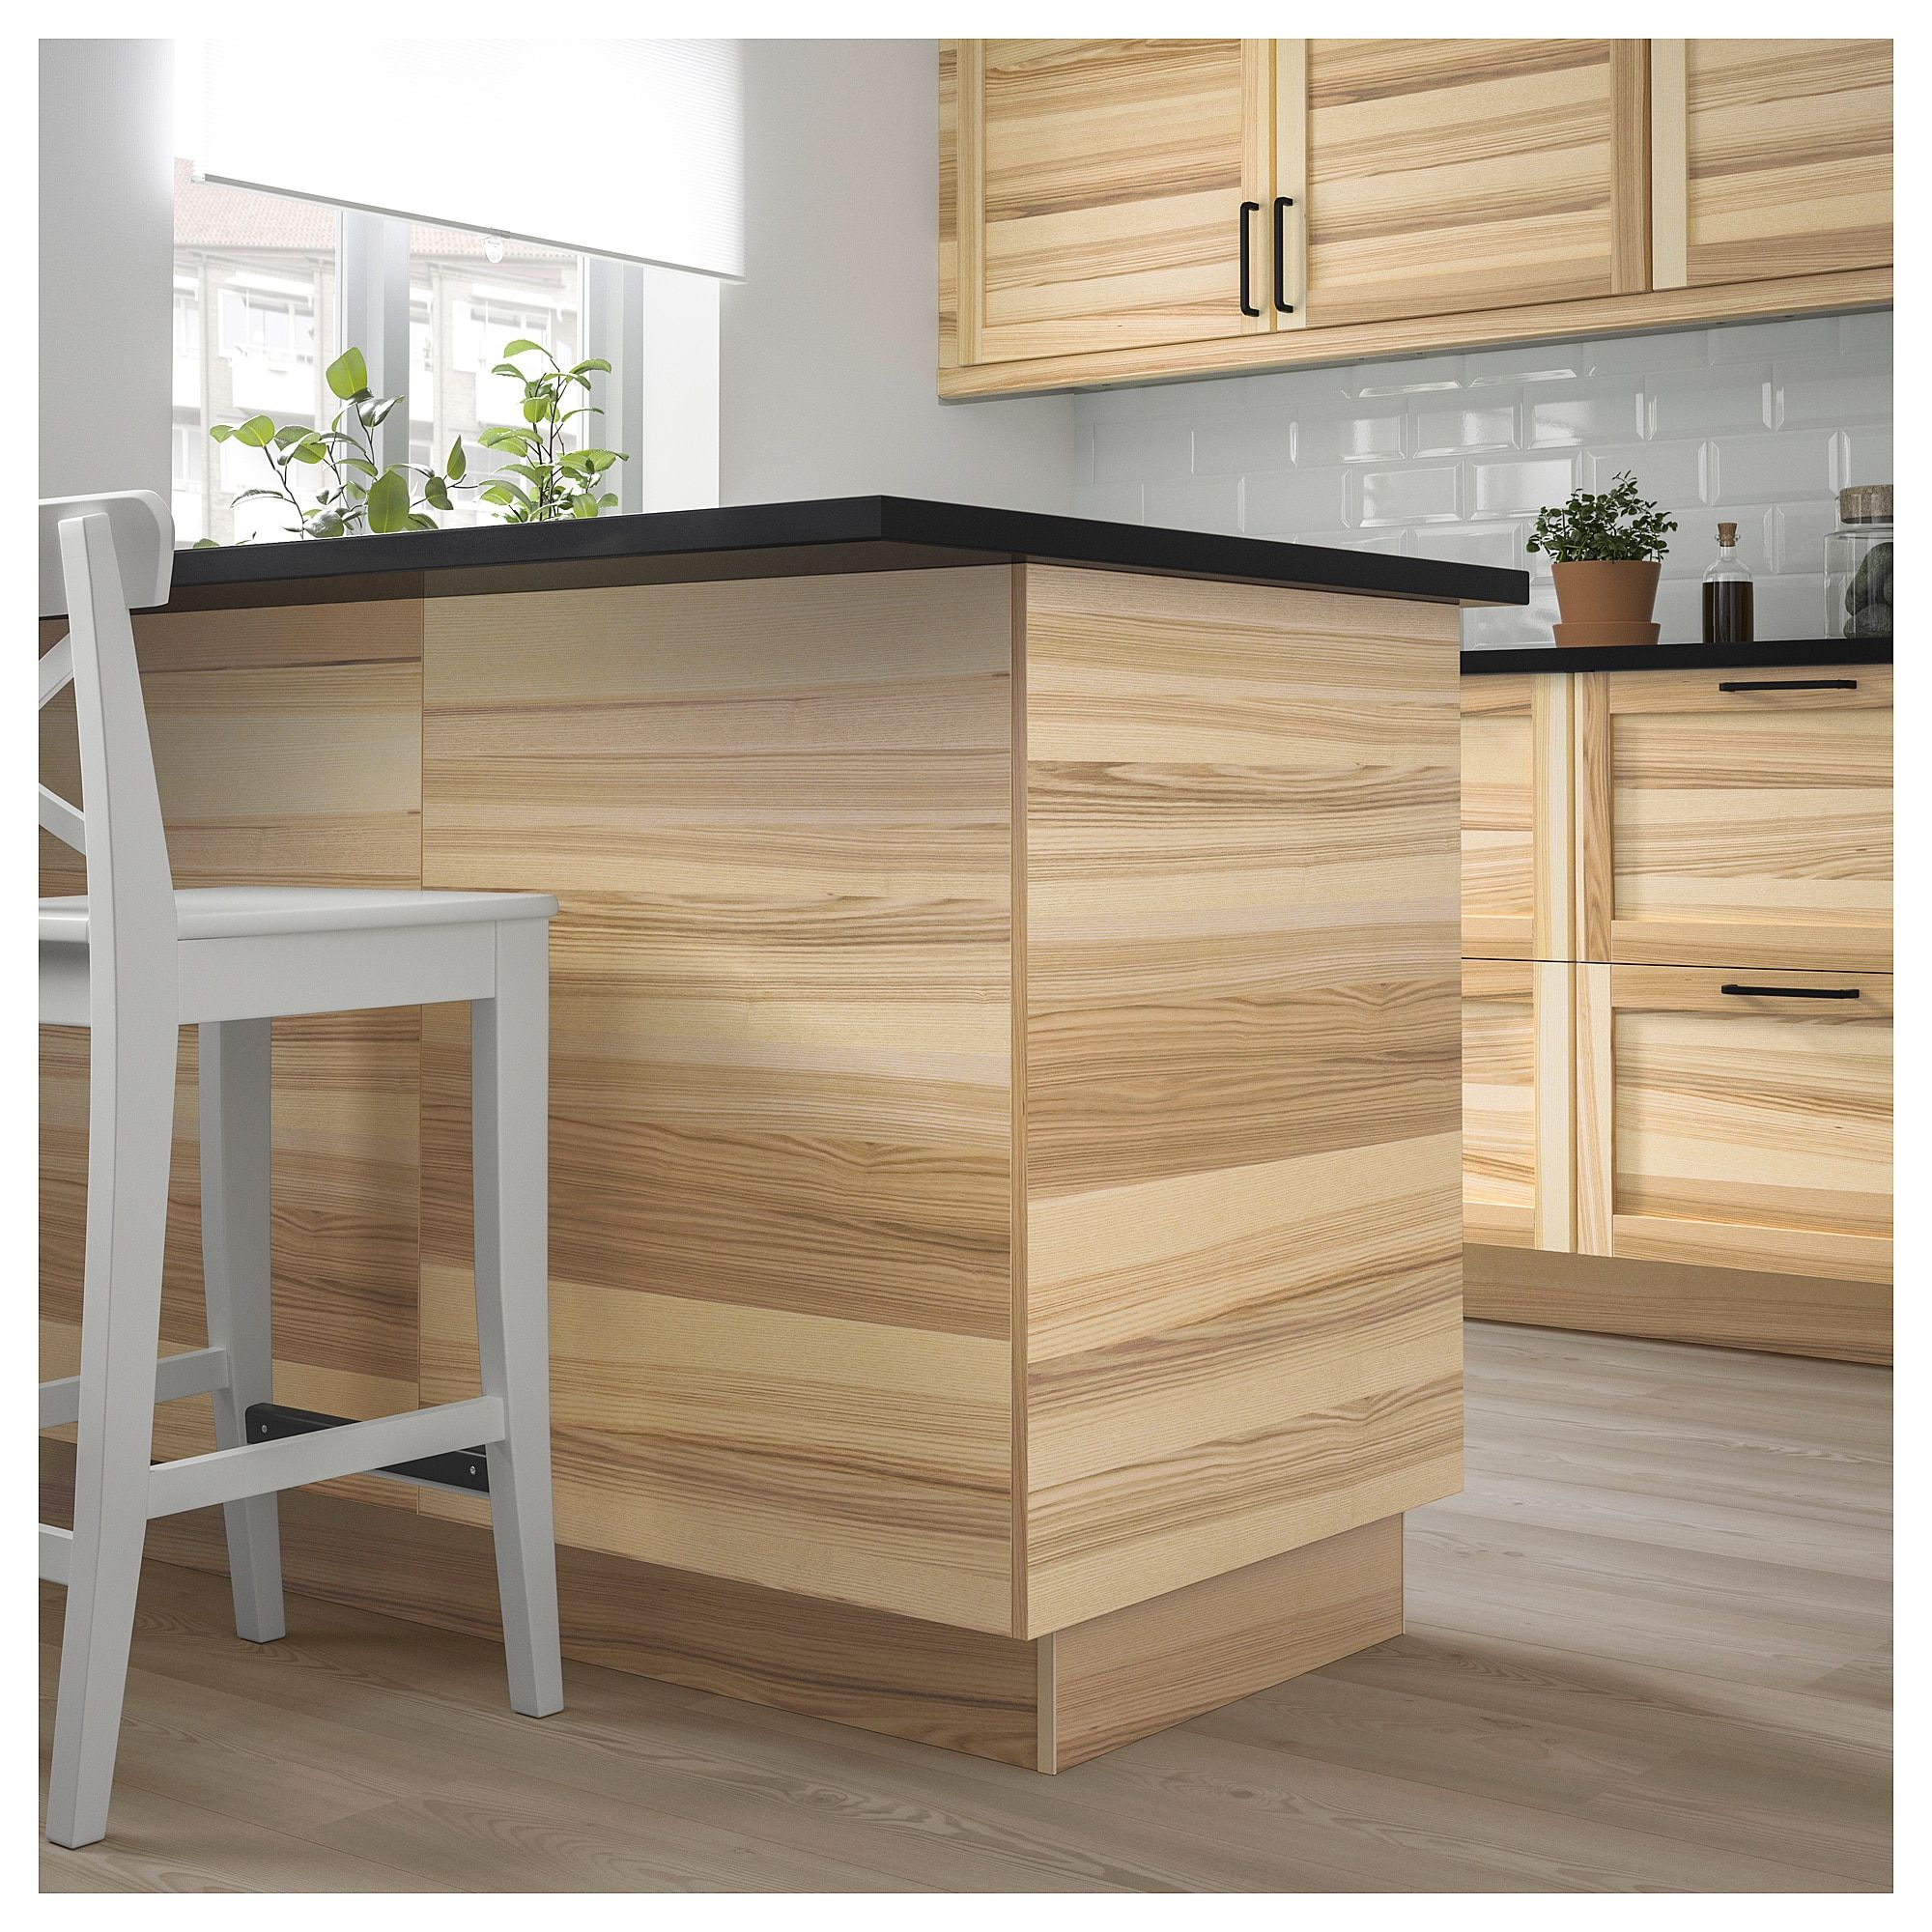 Torhamn Cover Panel Natural Ash 24x80 Ikea In 2020 Cottage Kitchen Design Ikea Kitchen Ikea